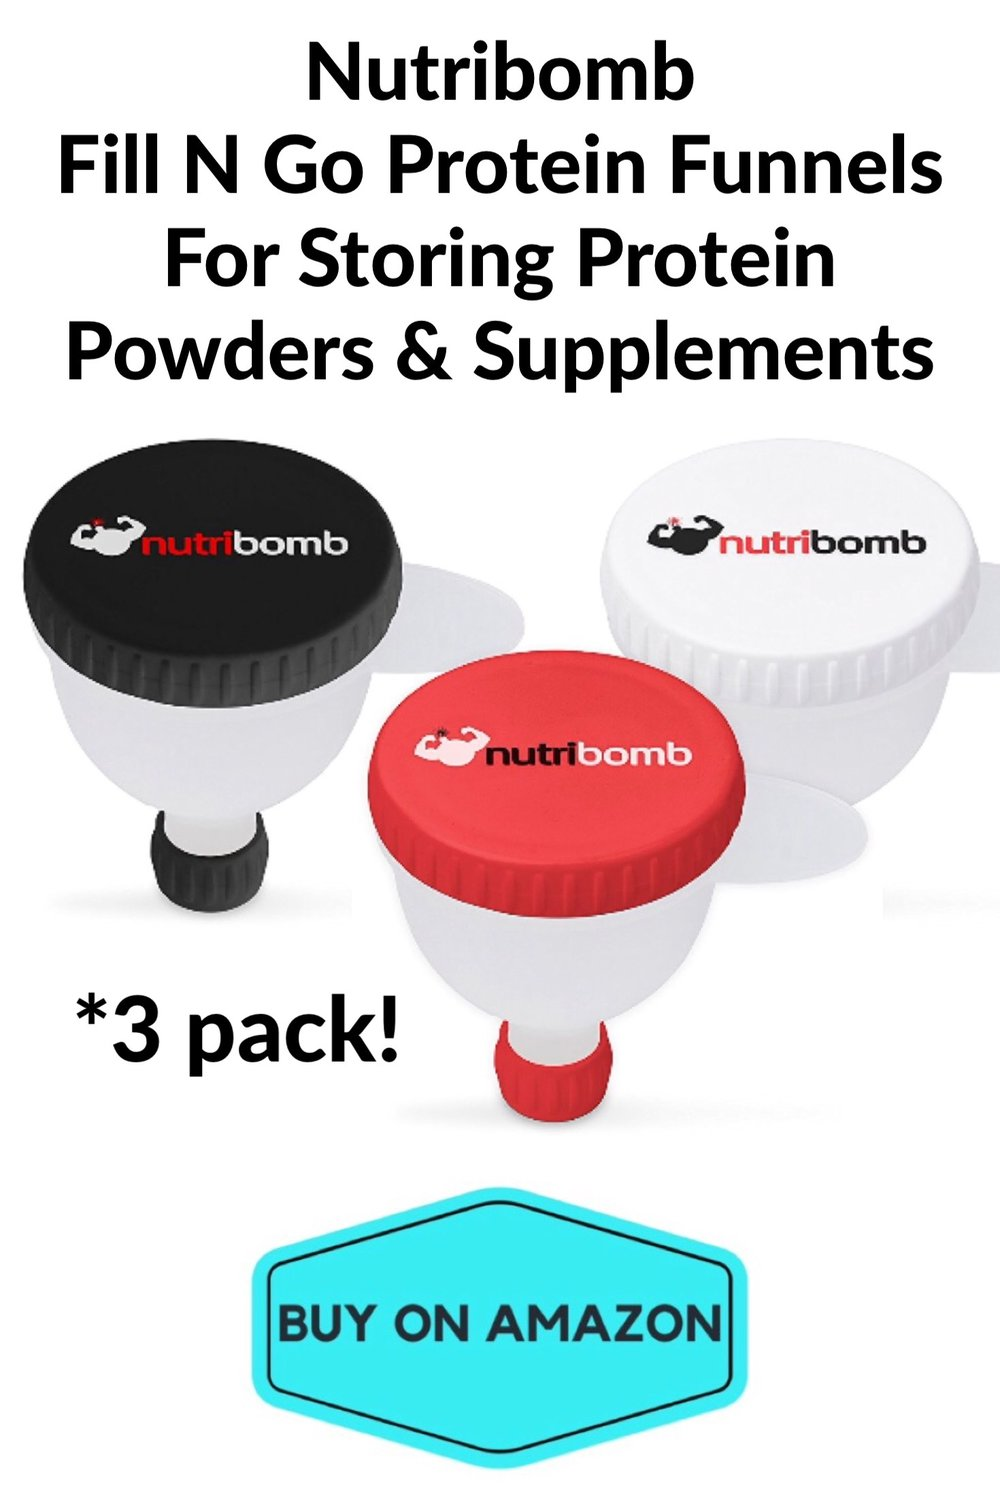 Nutribomb Fill-N-Go Protein Funnels